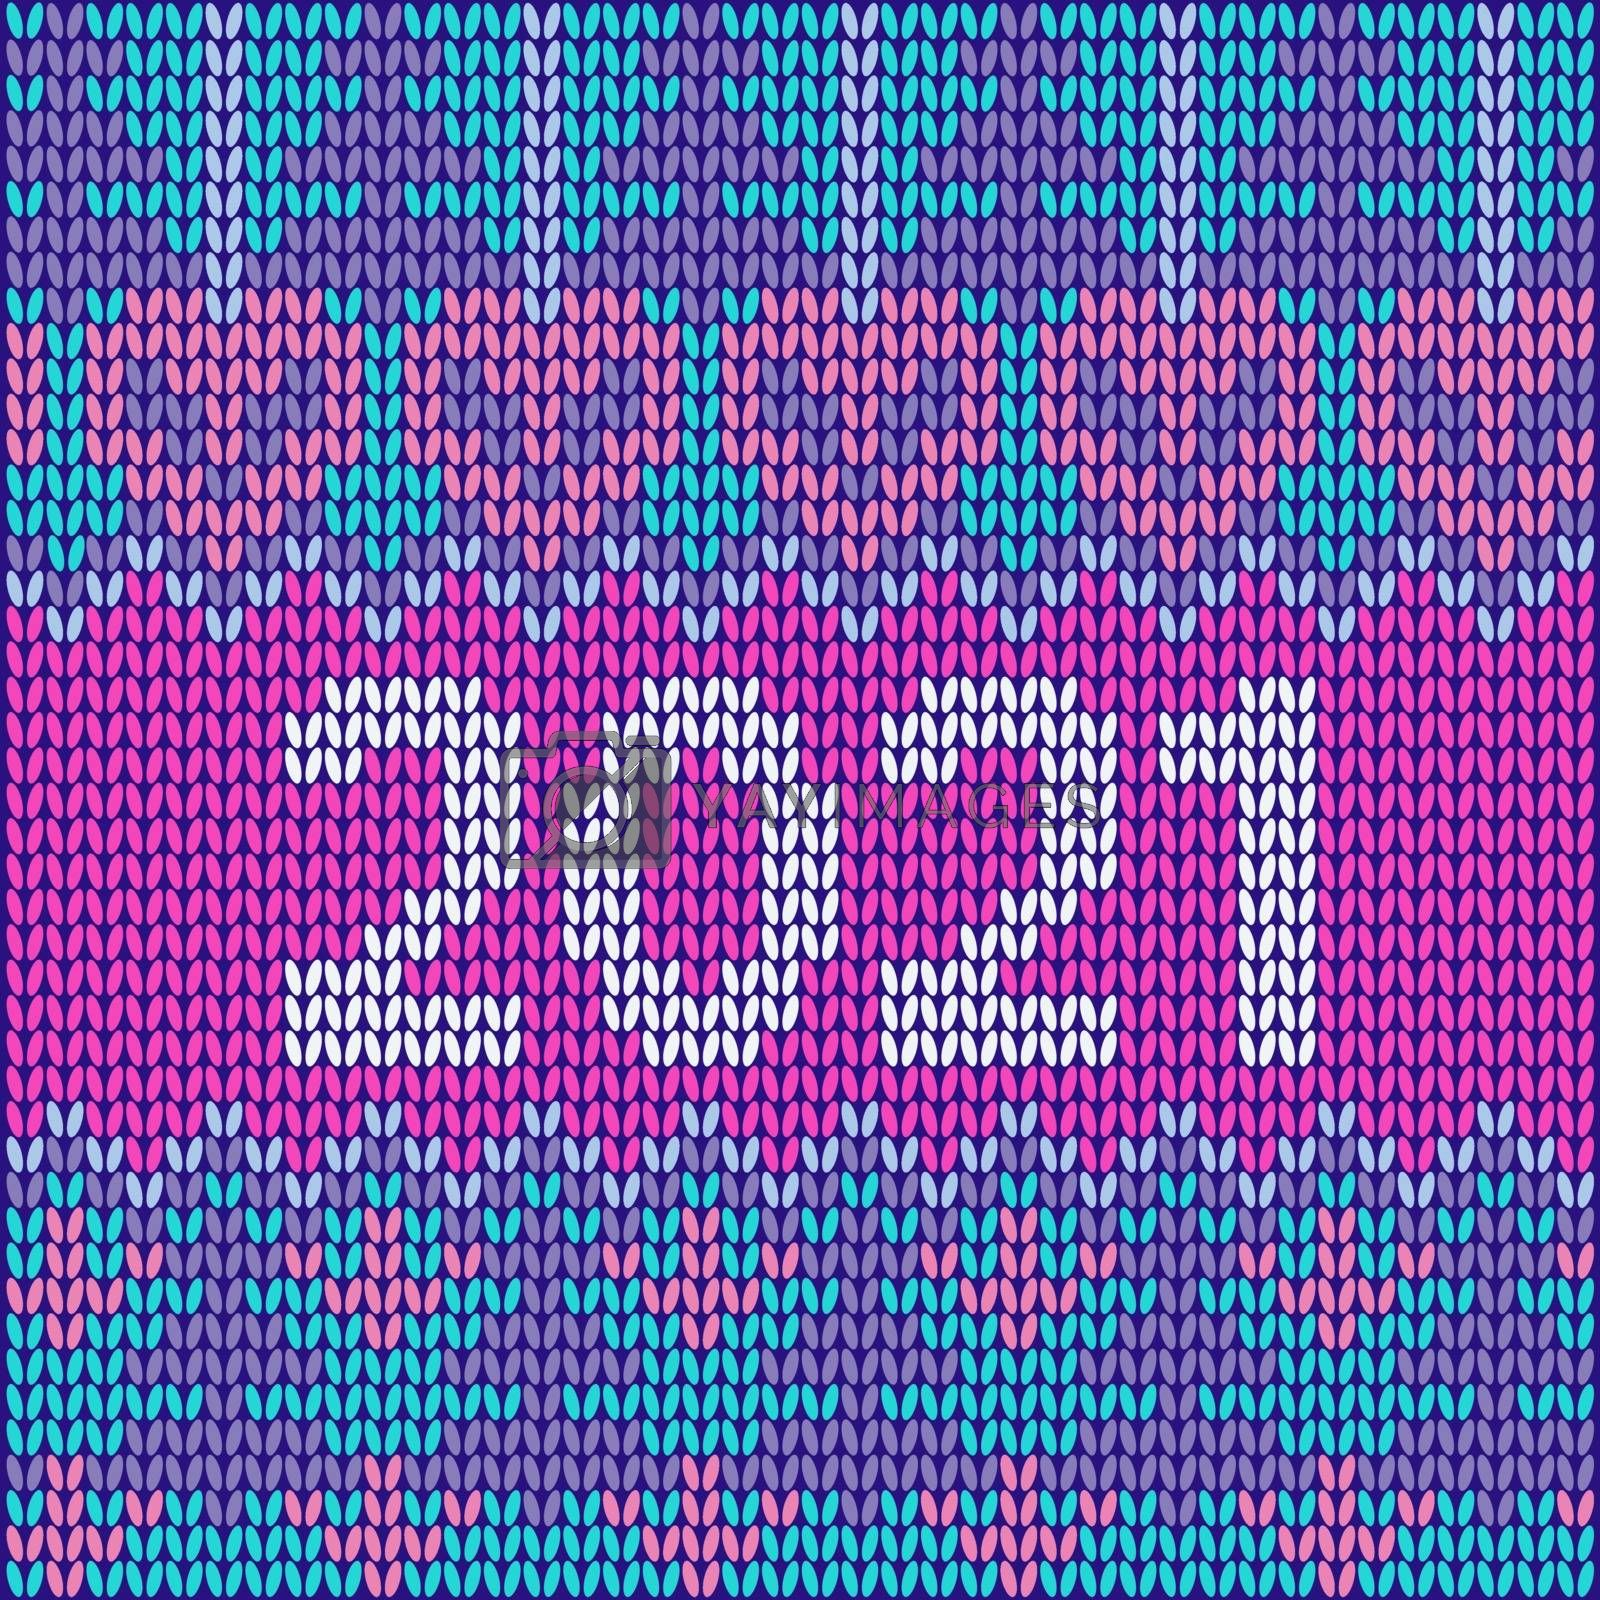 New Year's ornament for knitting Scandinavian style knitted pattern. Poster 2021 Perfect for wallpaper, wrapping paper, pattern fills, winter greetings, web background, Christmas greeting cards.